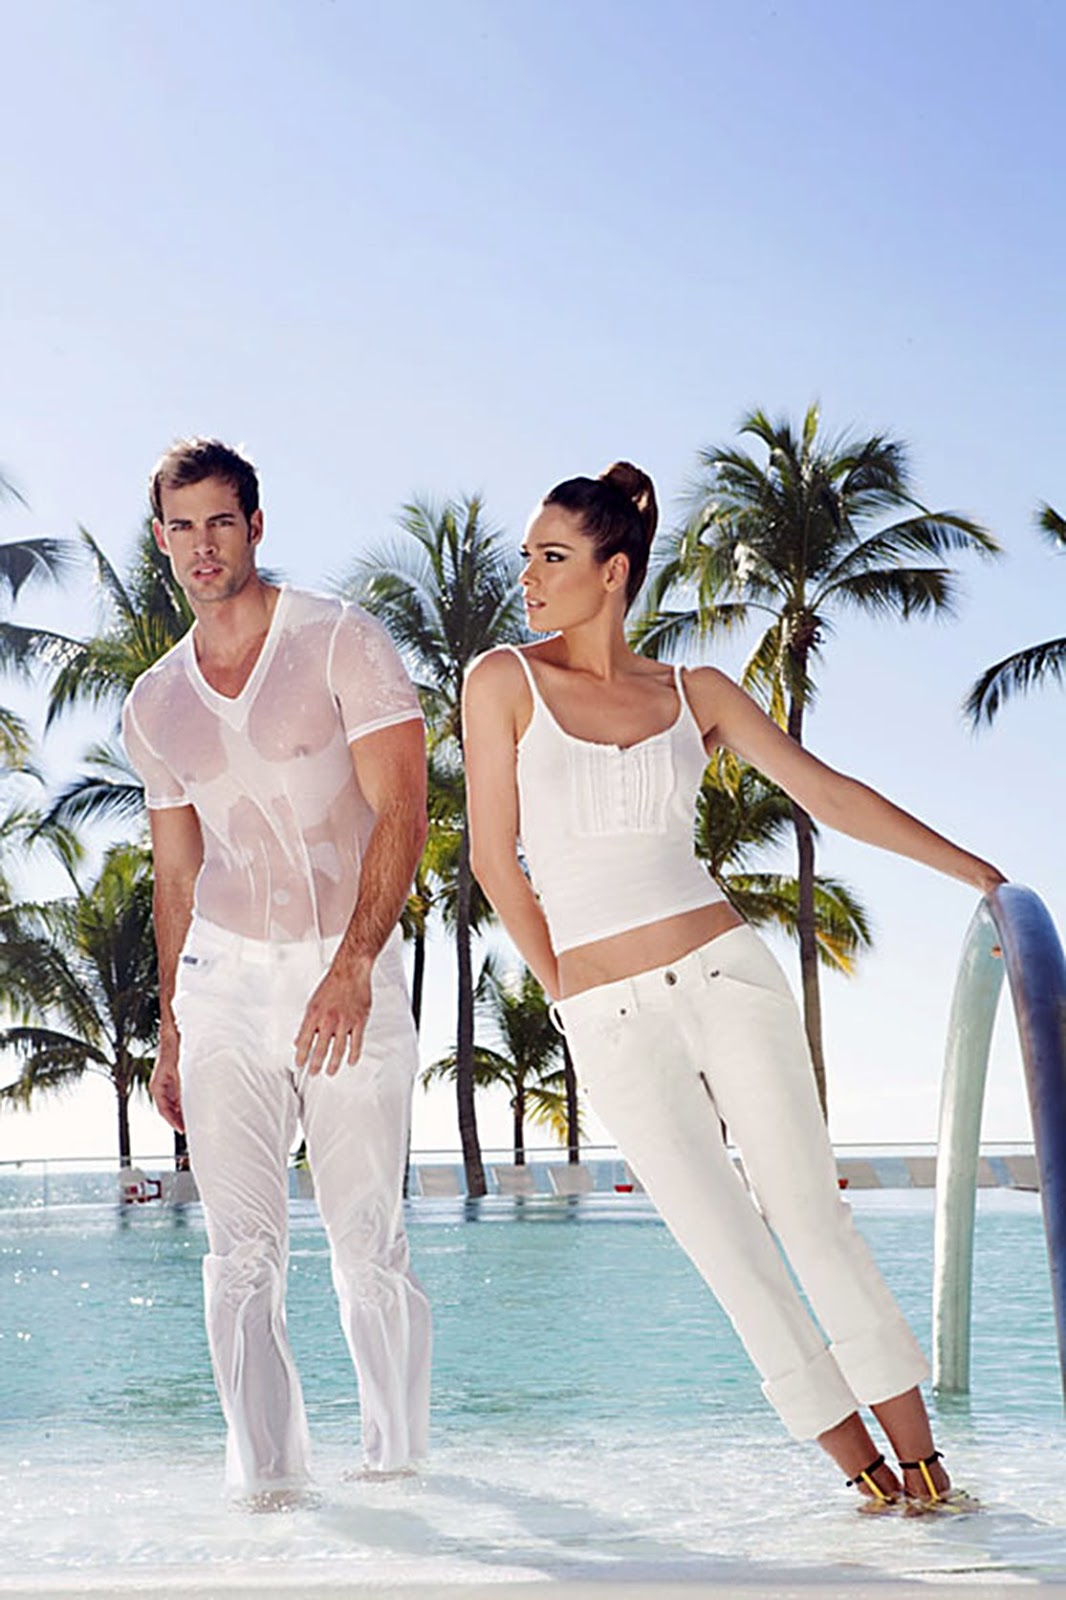 Have Maite perroni y william levy thanks for